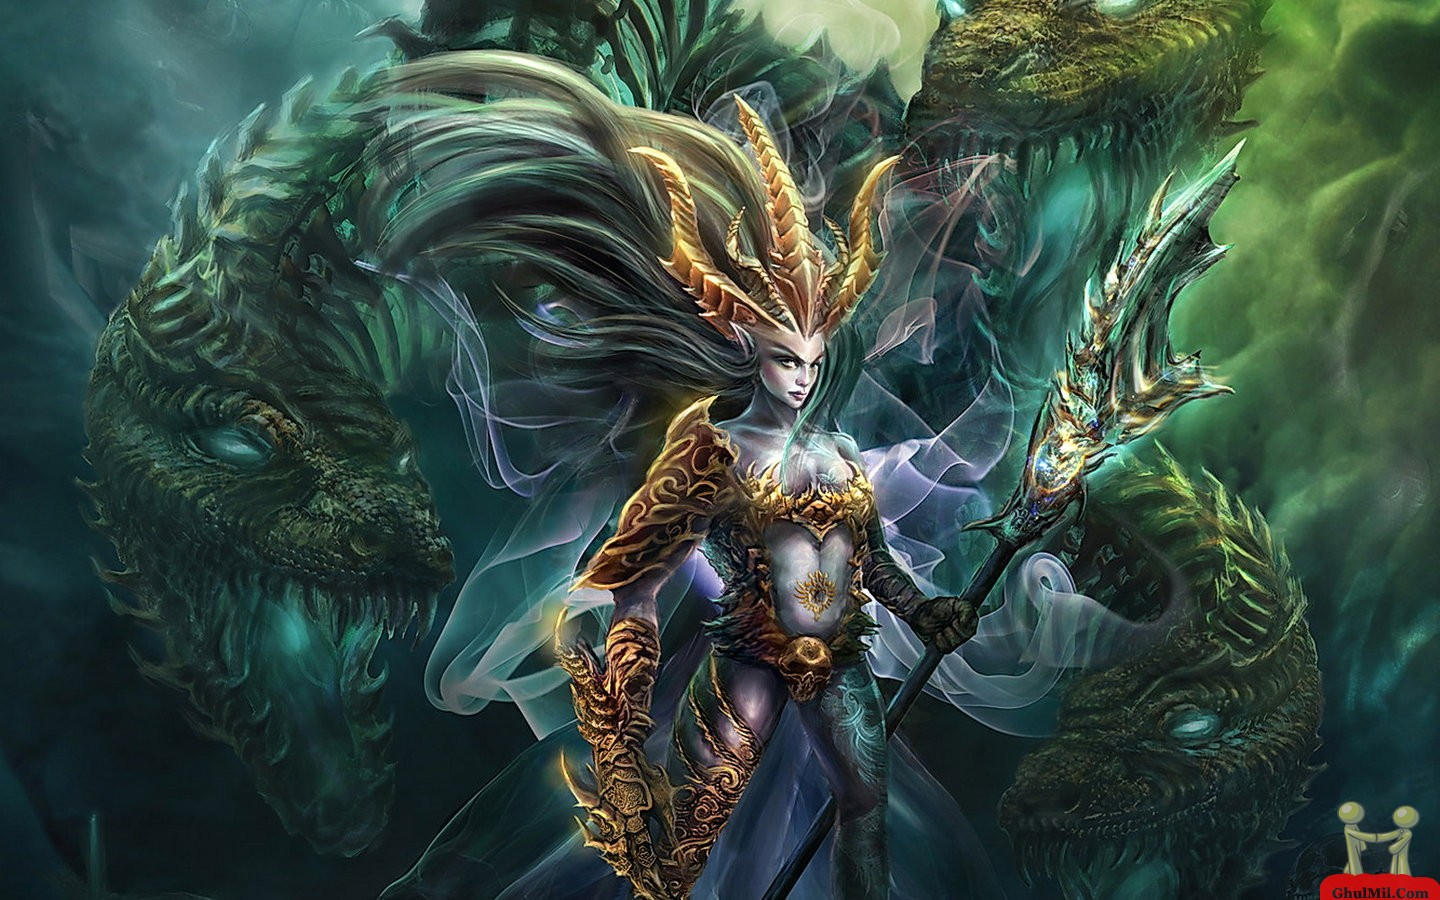 3D Strange Girl With Dragon Wallpaper E Entertainment 1440x900